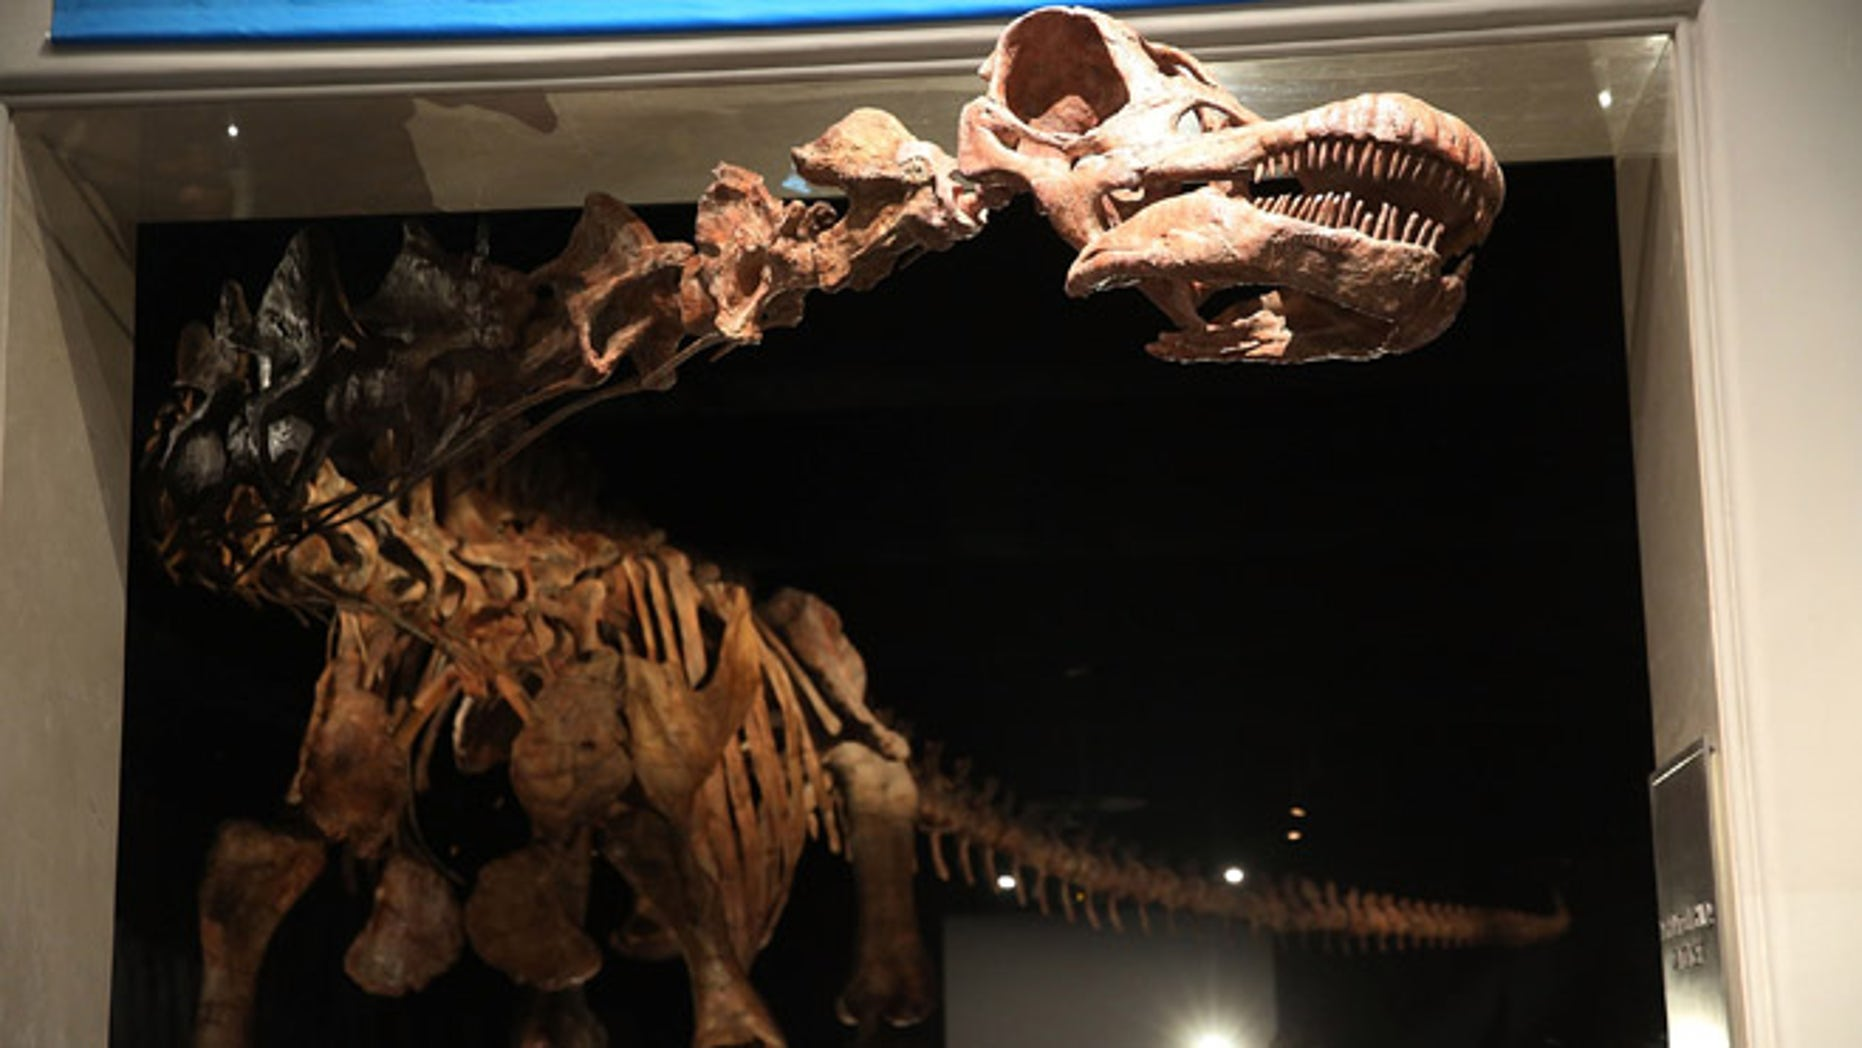 """NEW YORK, NY - JANUARY 14:  A replica of one of the largest dinosaurs ever discovered is unveiled at the American Museum of Natural History on January 14, 2016 in New York City. The replica of the """"Titanosaur""""  weighs about 70 tons, is 17 feet tall and stretches to nearly 122 feet long. The dinosaur belongs to the titanosaur family and was discovered by Paleontologists in the Patagonian Desert of Argentina in 2014 and lived about 100 to 95 million years ago. The exhibit at the museum features bones, fossils and a fibreglass replica of the creature.  (Photo by Spencer Platt/Getty Images)"""